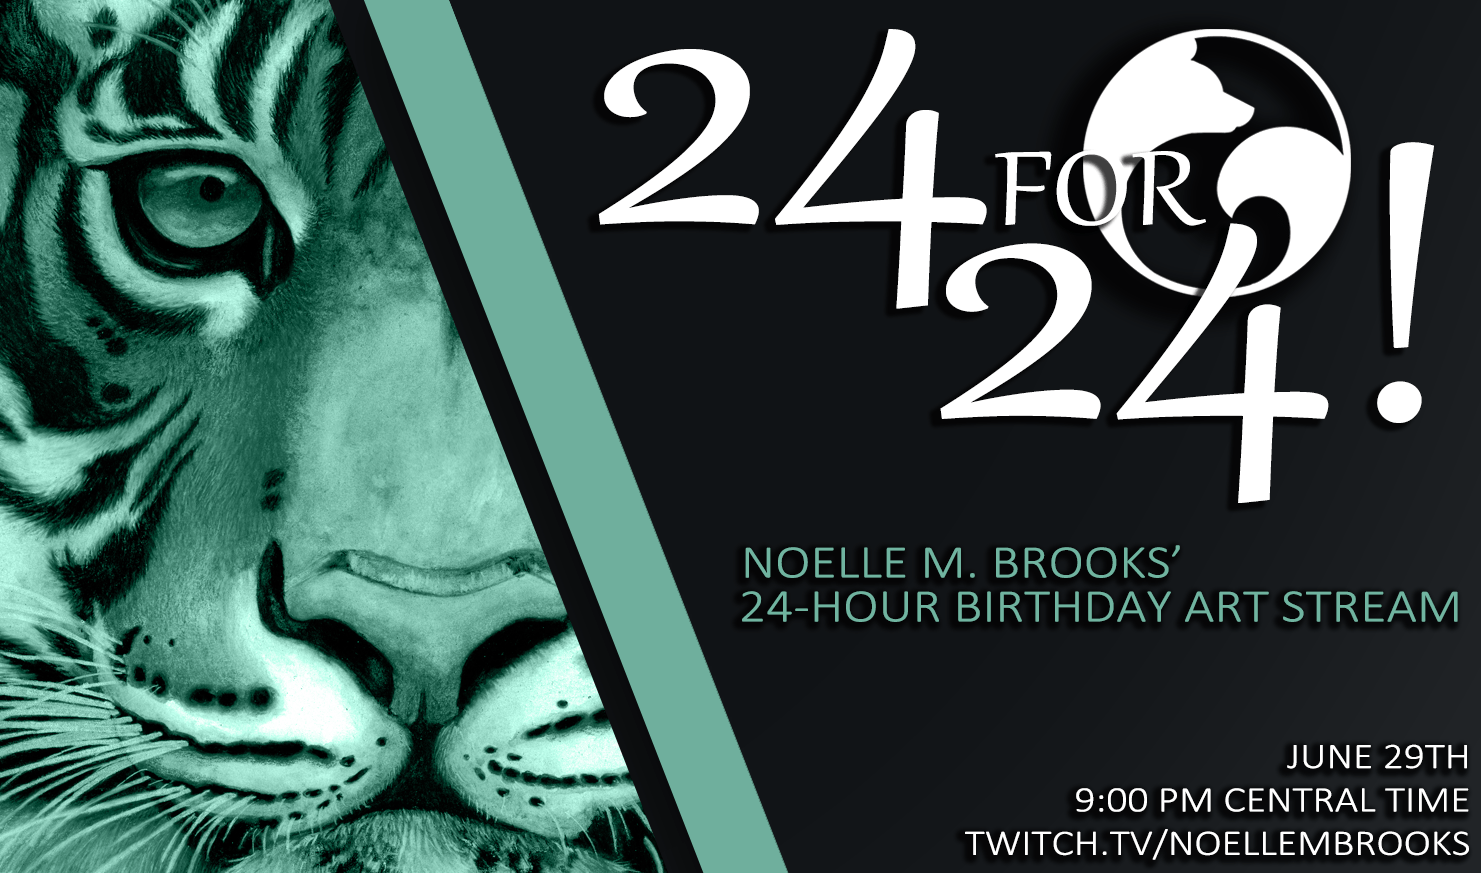 24 for 24!